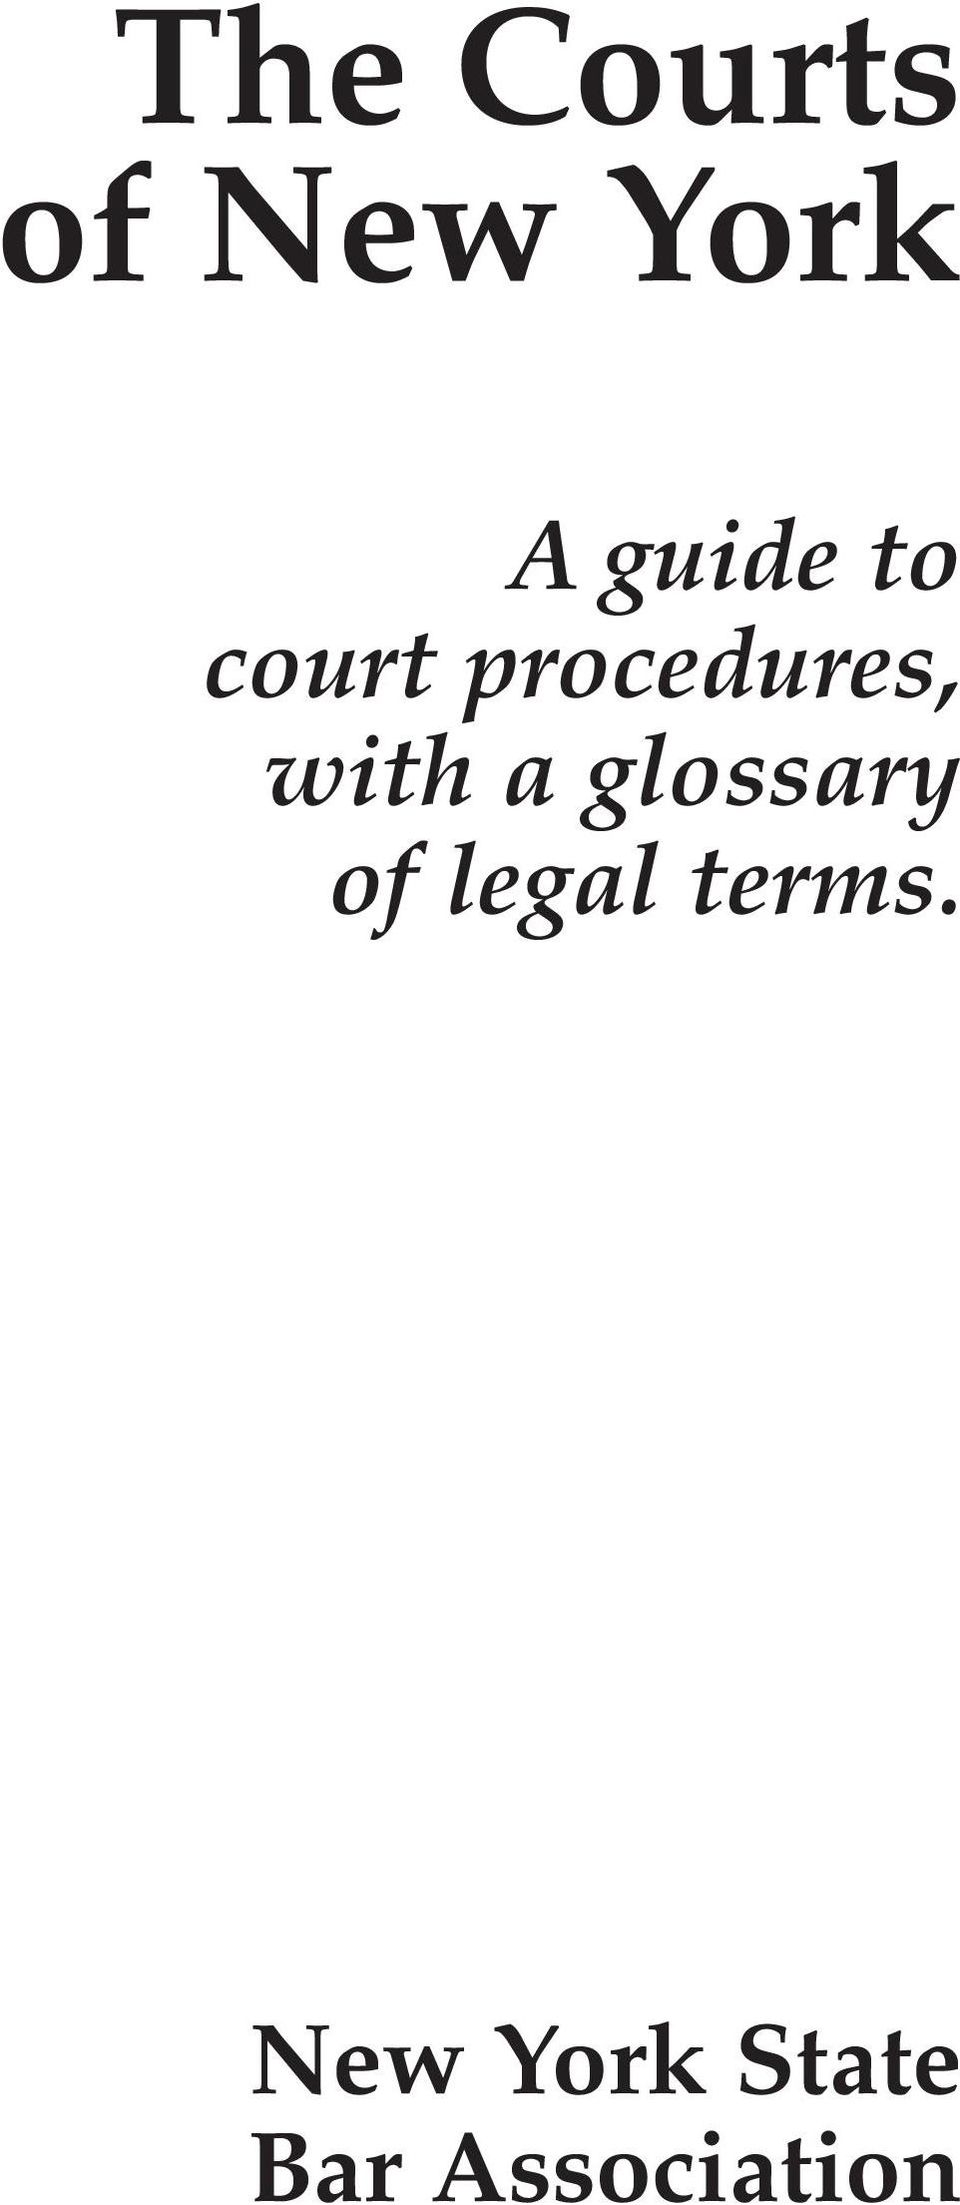 with a glossary of legal